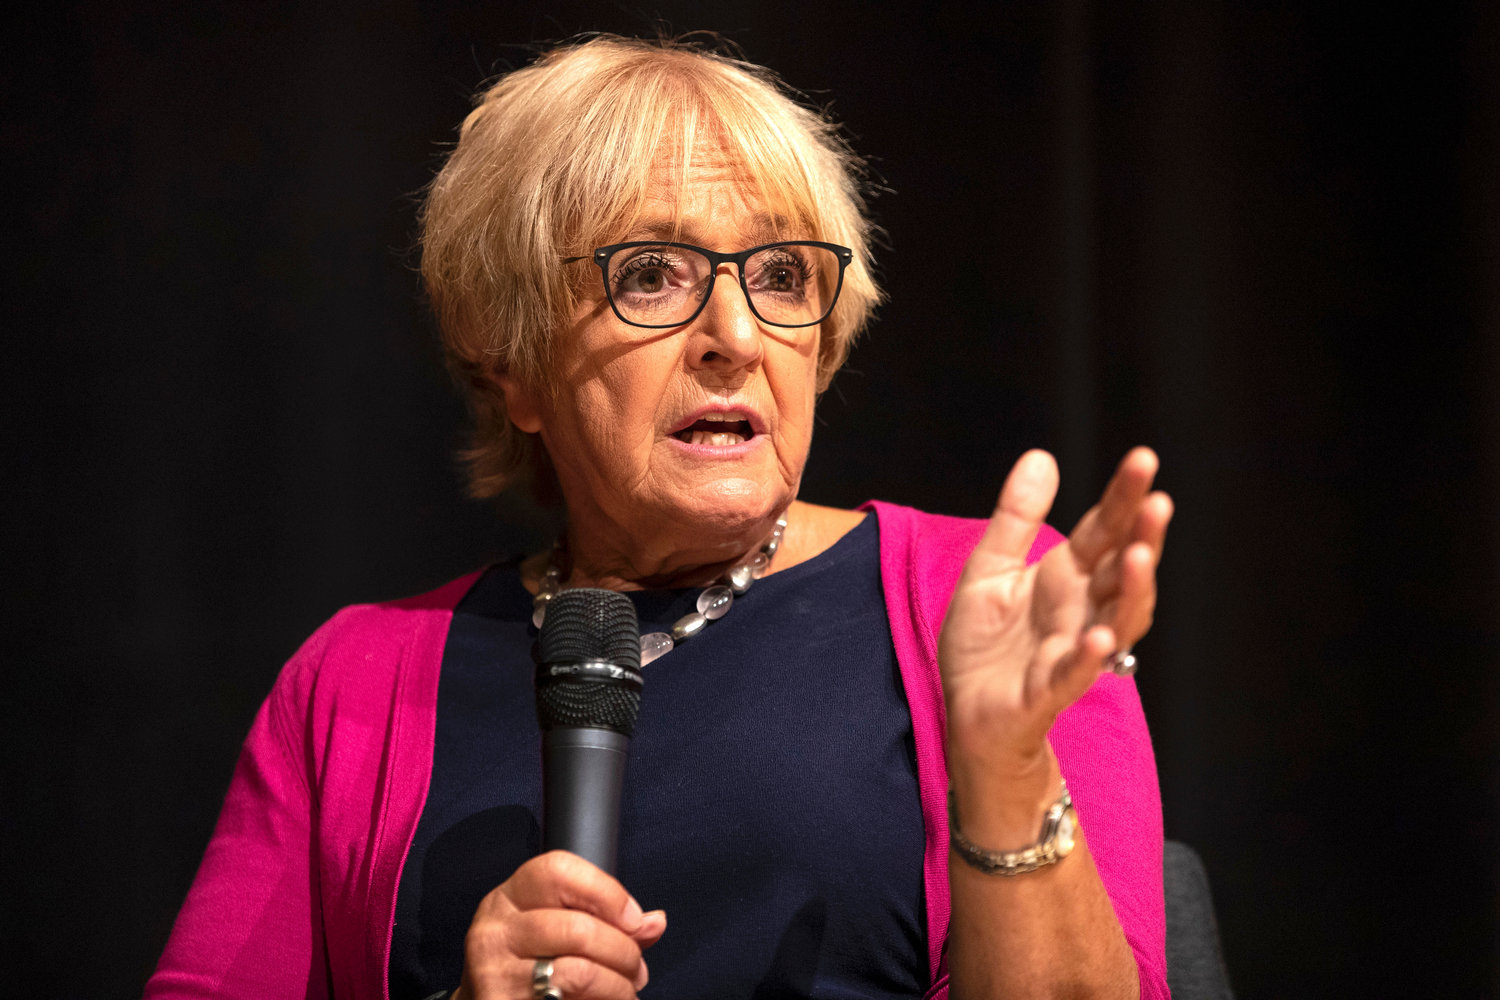 Margaret Hodge speaks during the Jewish Labour Movement Conference in London on Sept. 2, 2018.